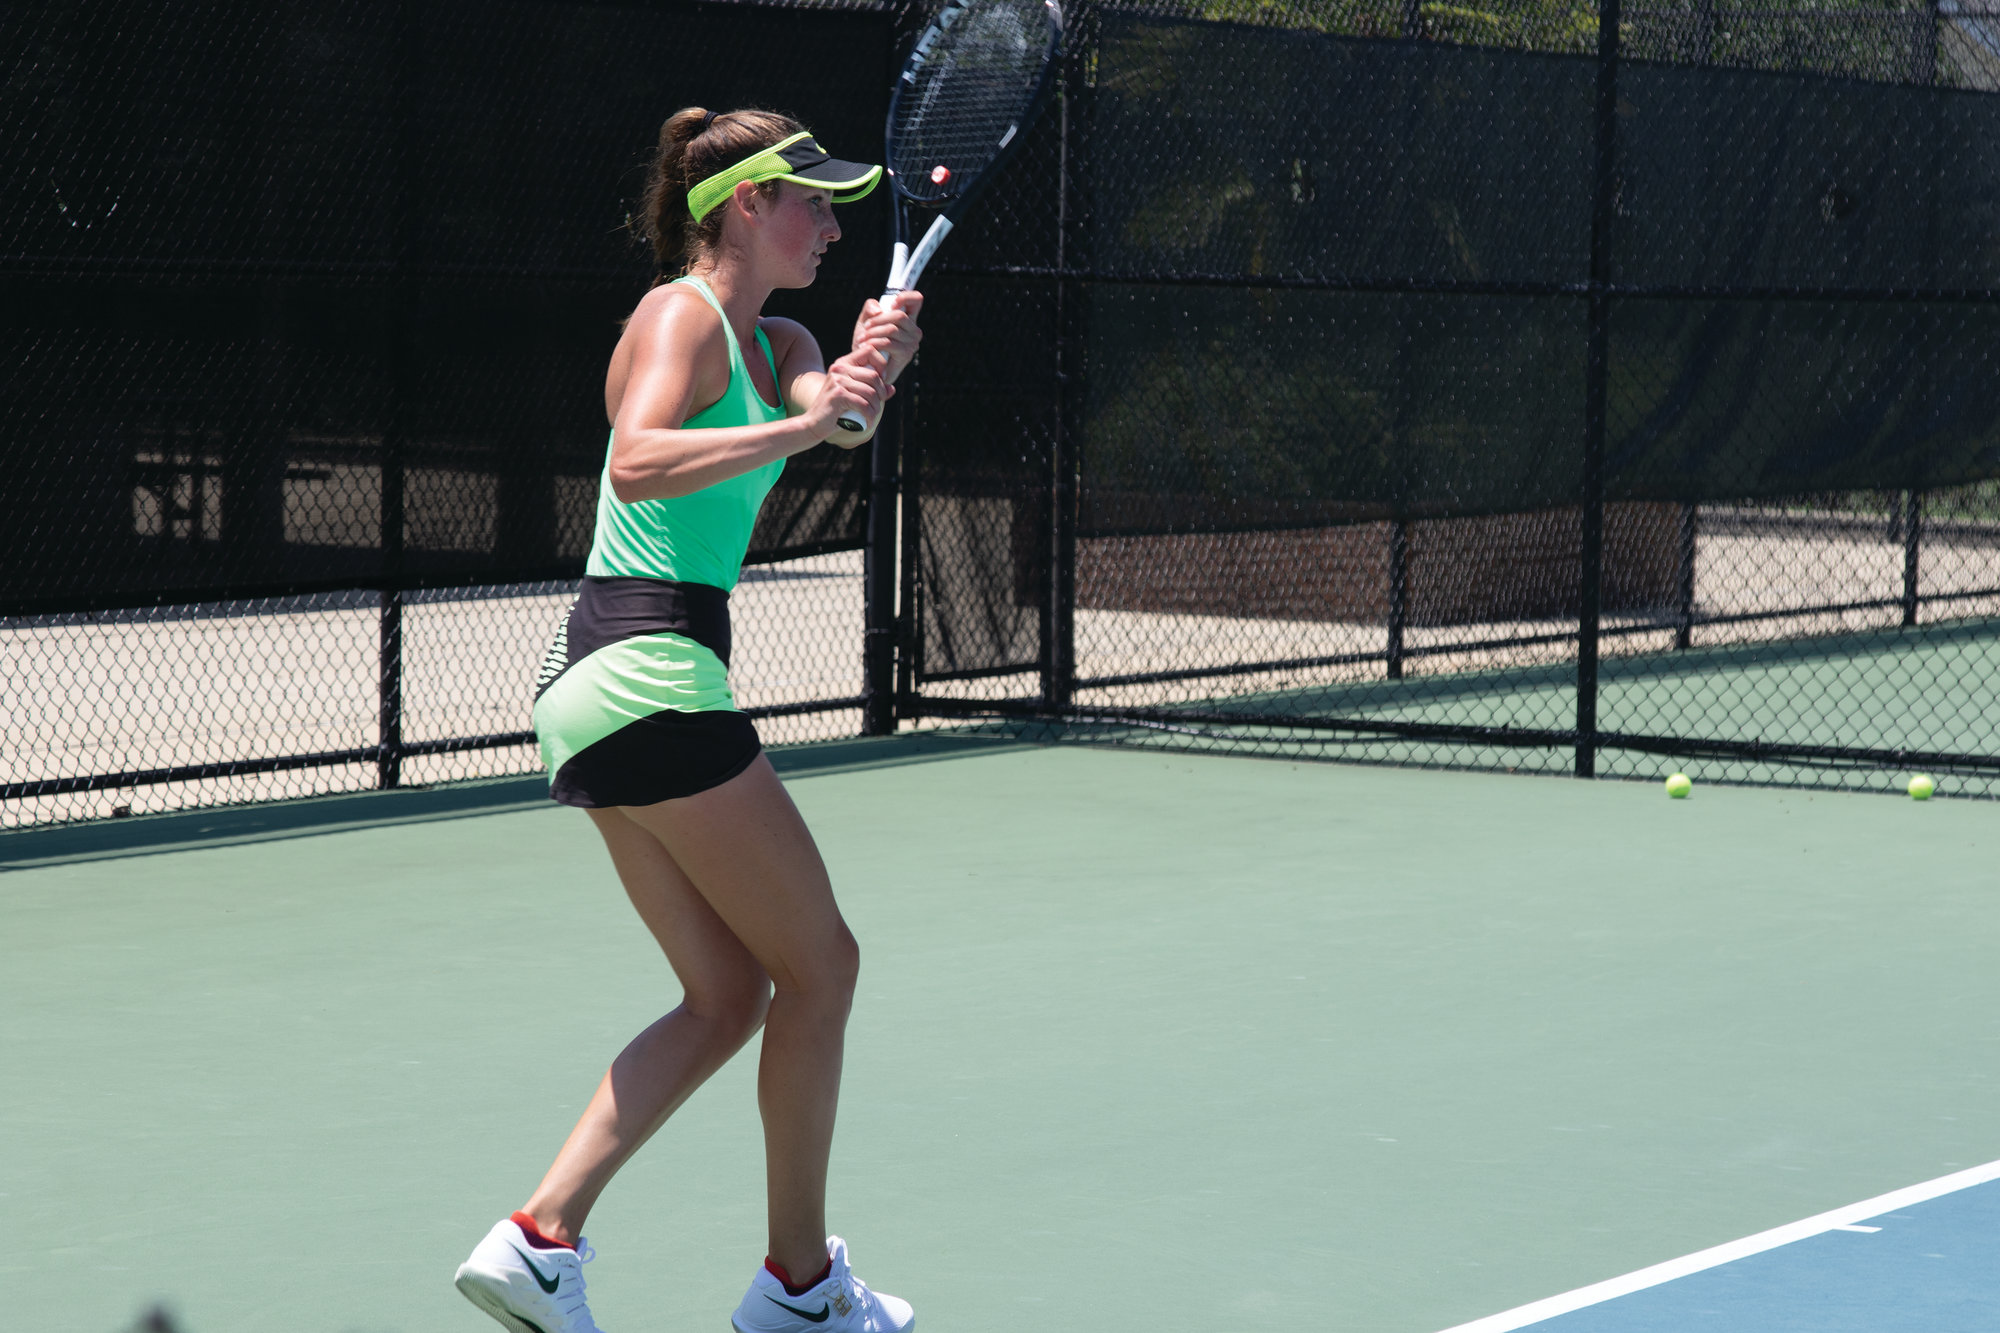 DANNY KELLY /   THE SUMTER ITEMCarson Branstine  returns a shot during her match against  Joelle Kissell in the qualifying round of the Palmetto Pro Open on Tuesday at Palmetto Tennis Center. Branstine won 7-5, 6-0, to advance to the main draw.